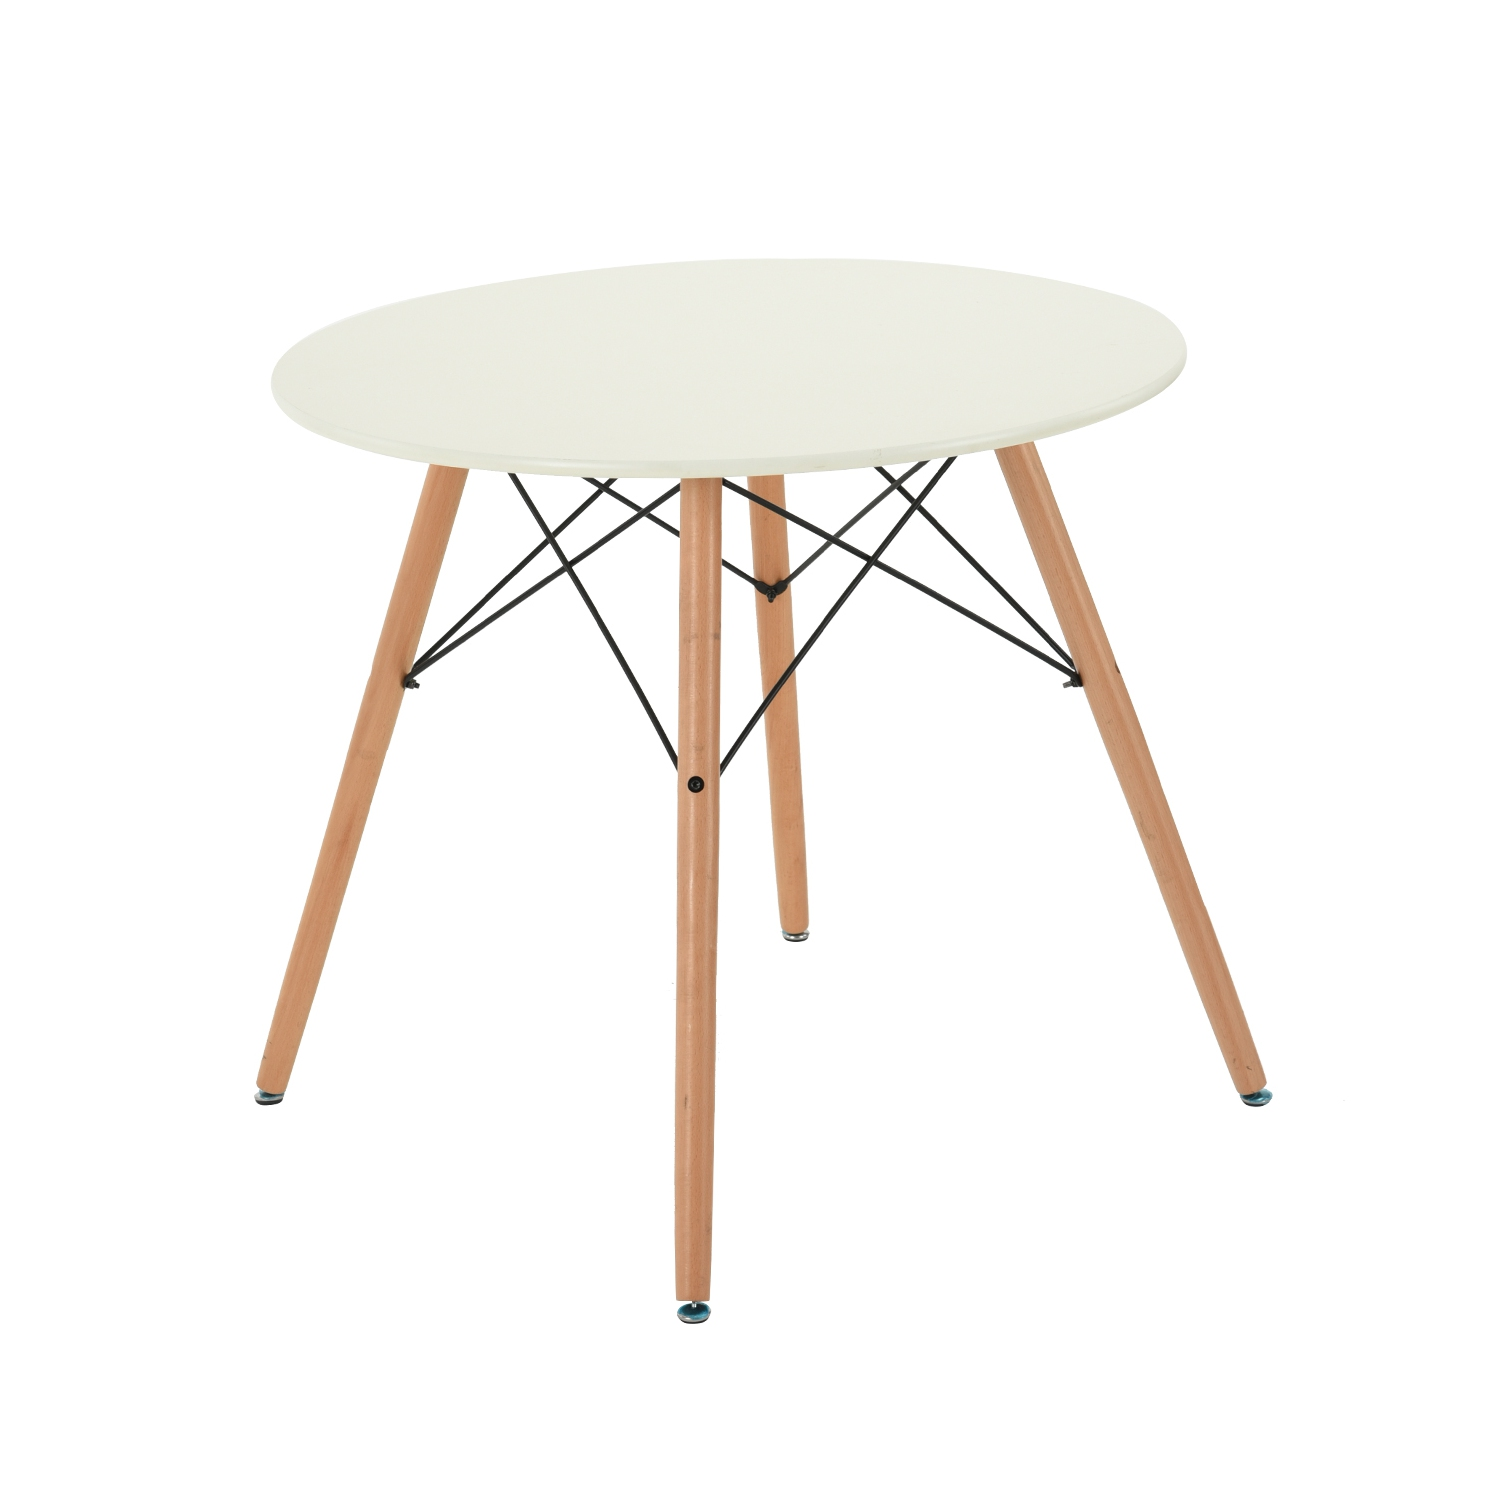 80 inch round dining table